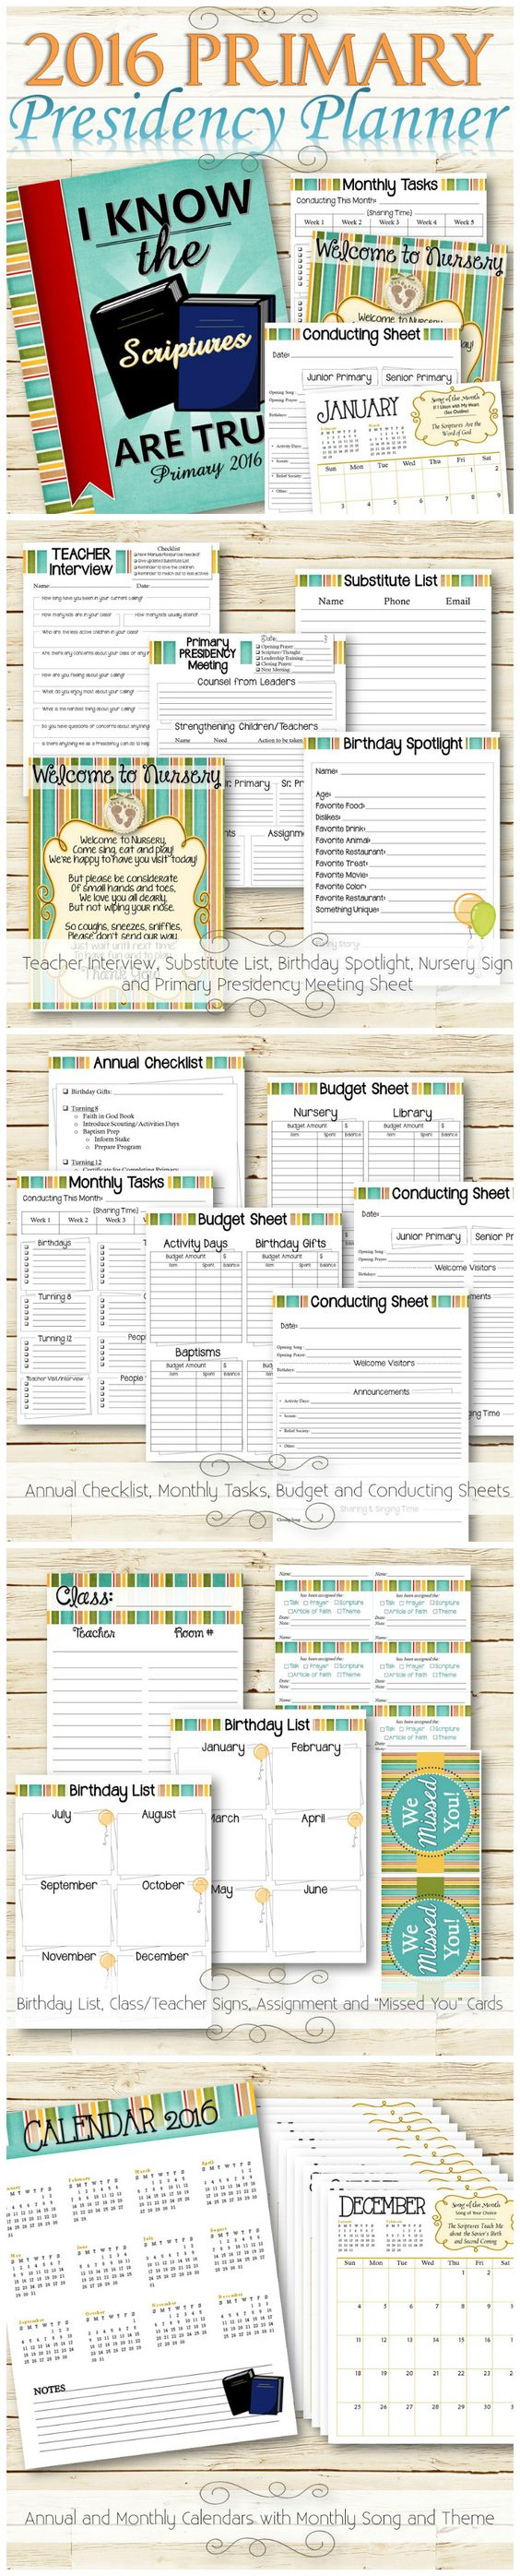 "A cute and simple way to make managing all the responsibilities and tasks in the LDS Primary Presidency Program easy. This 2016 all-in-one planner includes monthly songs, themes, calendars, task lists and more!   Planner Includes 31 Pages (Measures 8.5""x11"") - Annual Checklist - Monthly Task List - Budget Sheets - Conducting Sheet and more!"